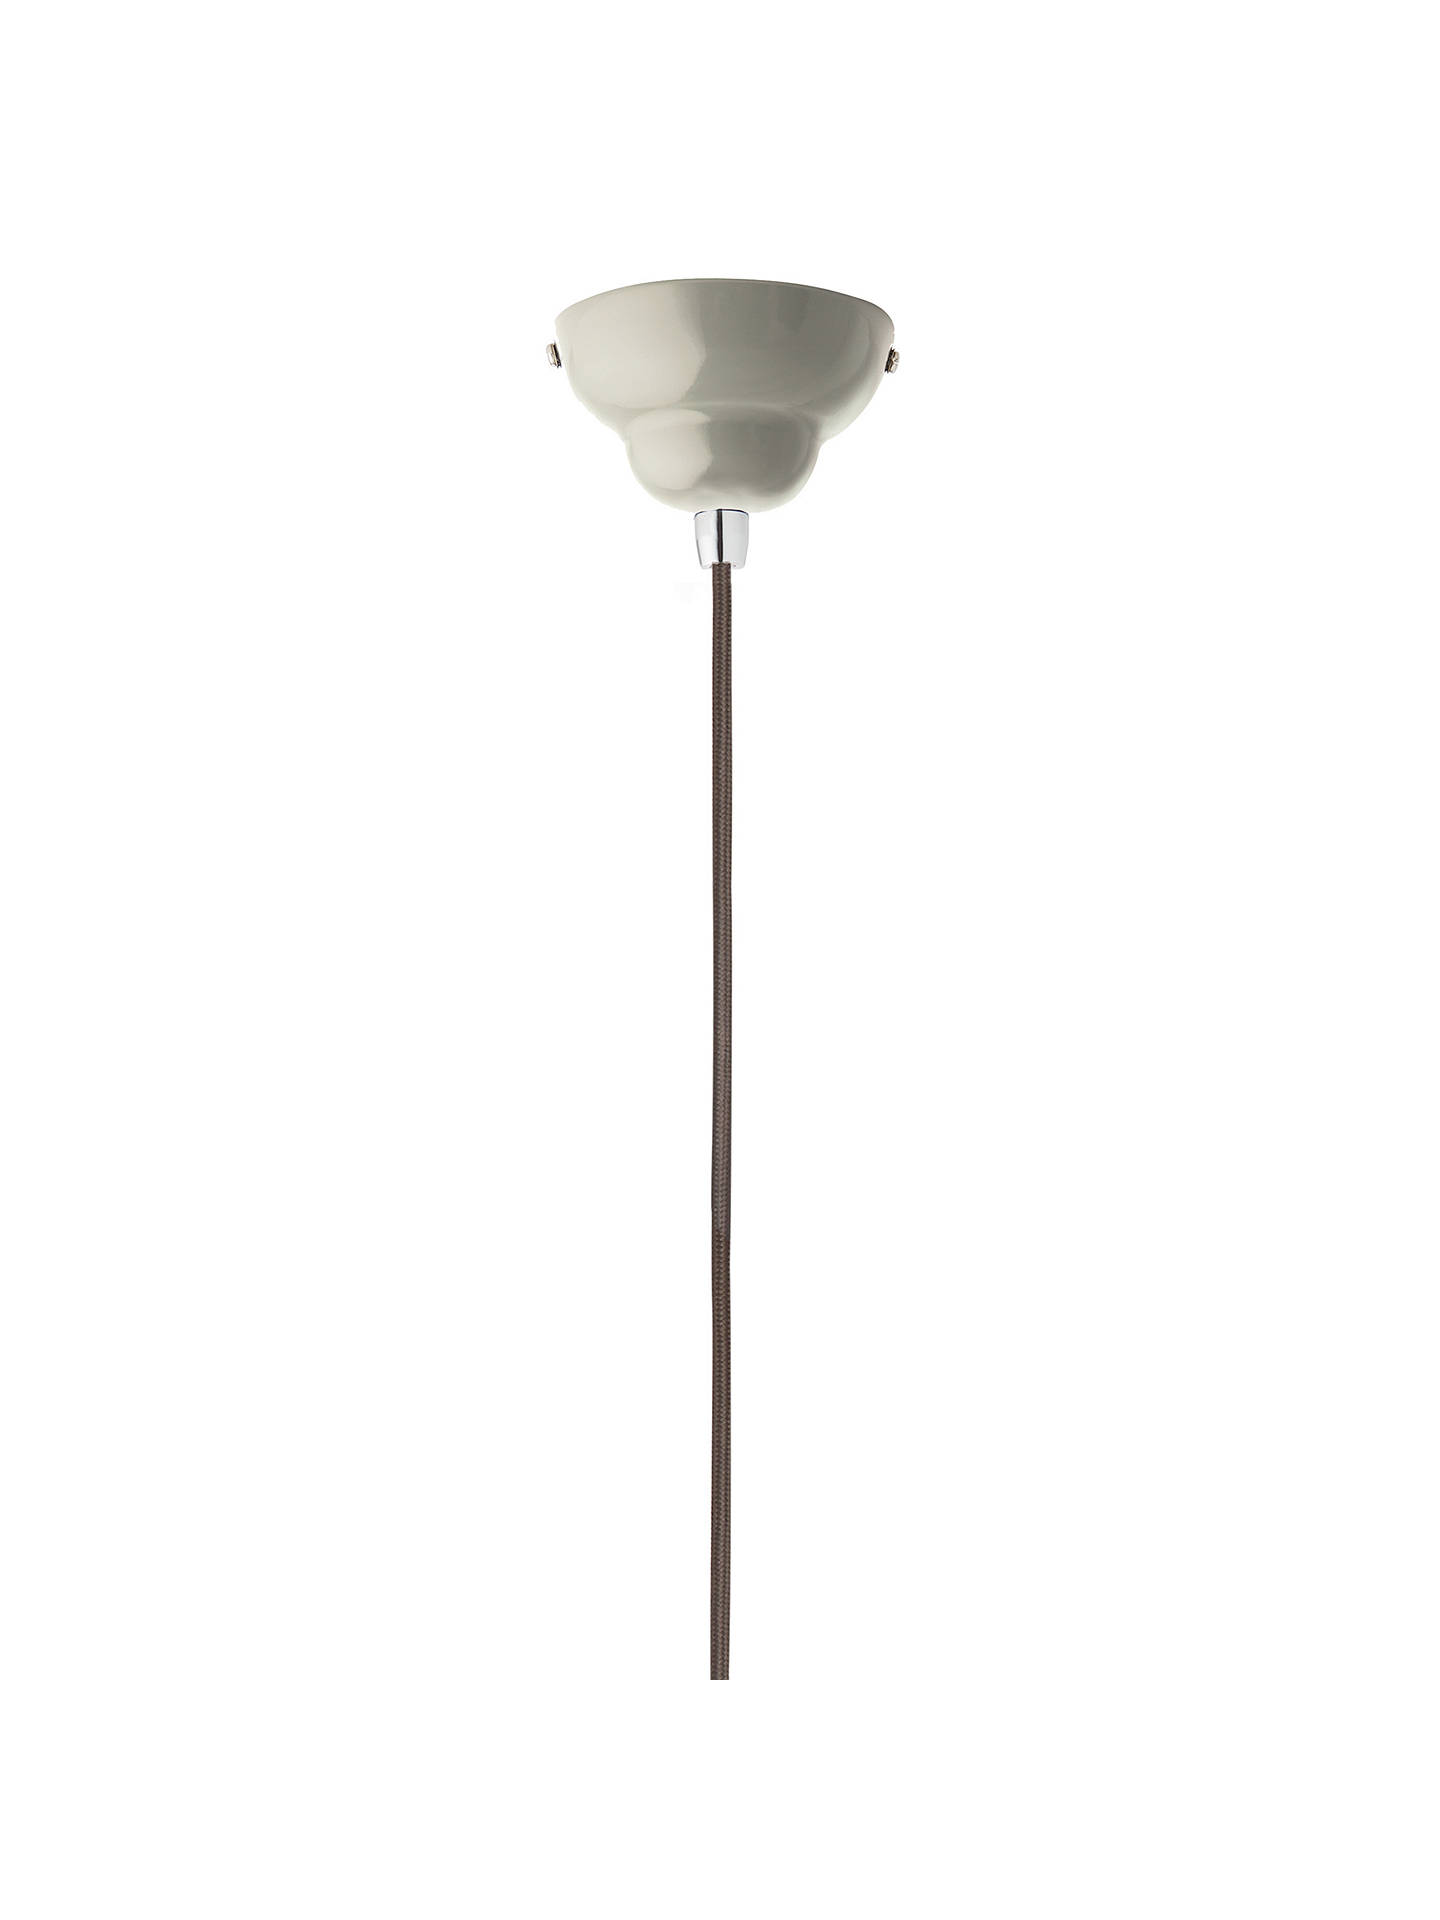 BuyAnglepoise 1227 Midi Ceiling Light, Linen White Online at johnlewis.com